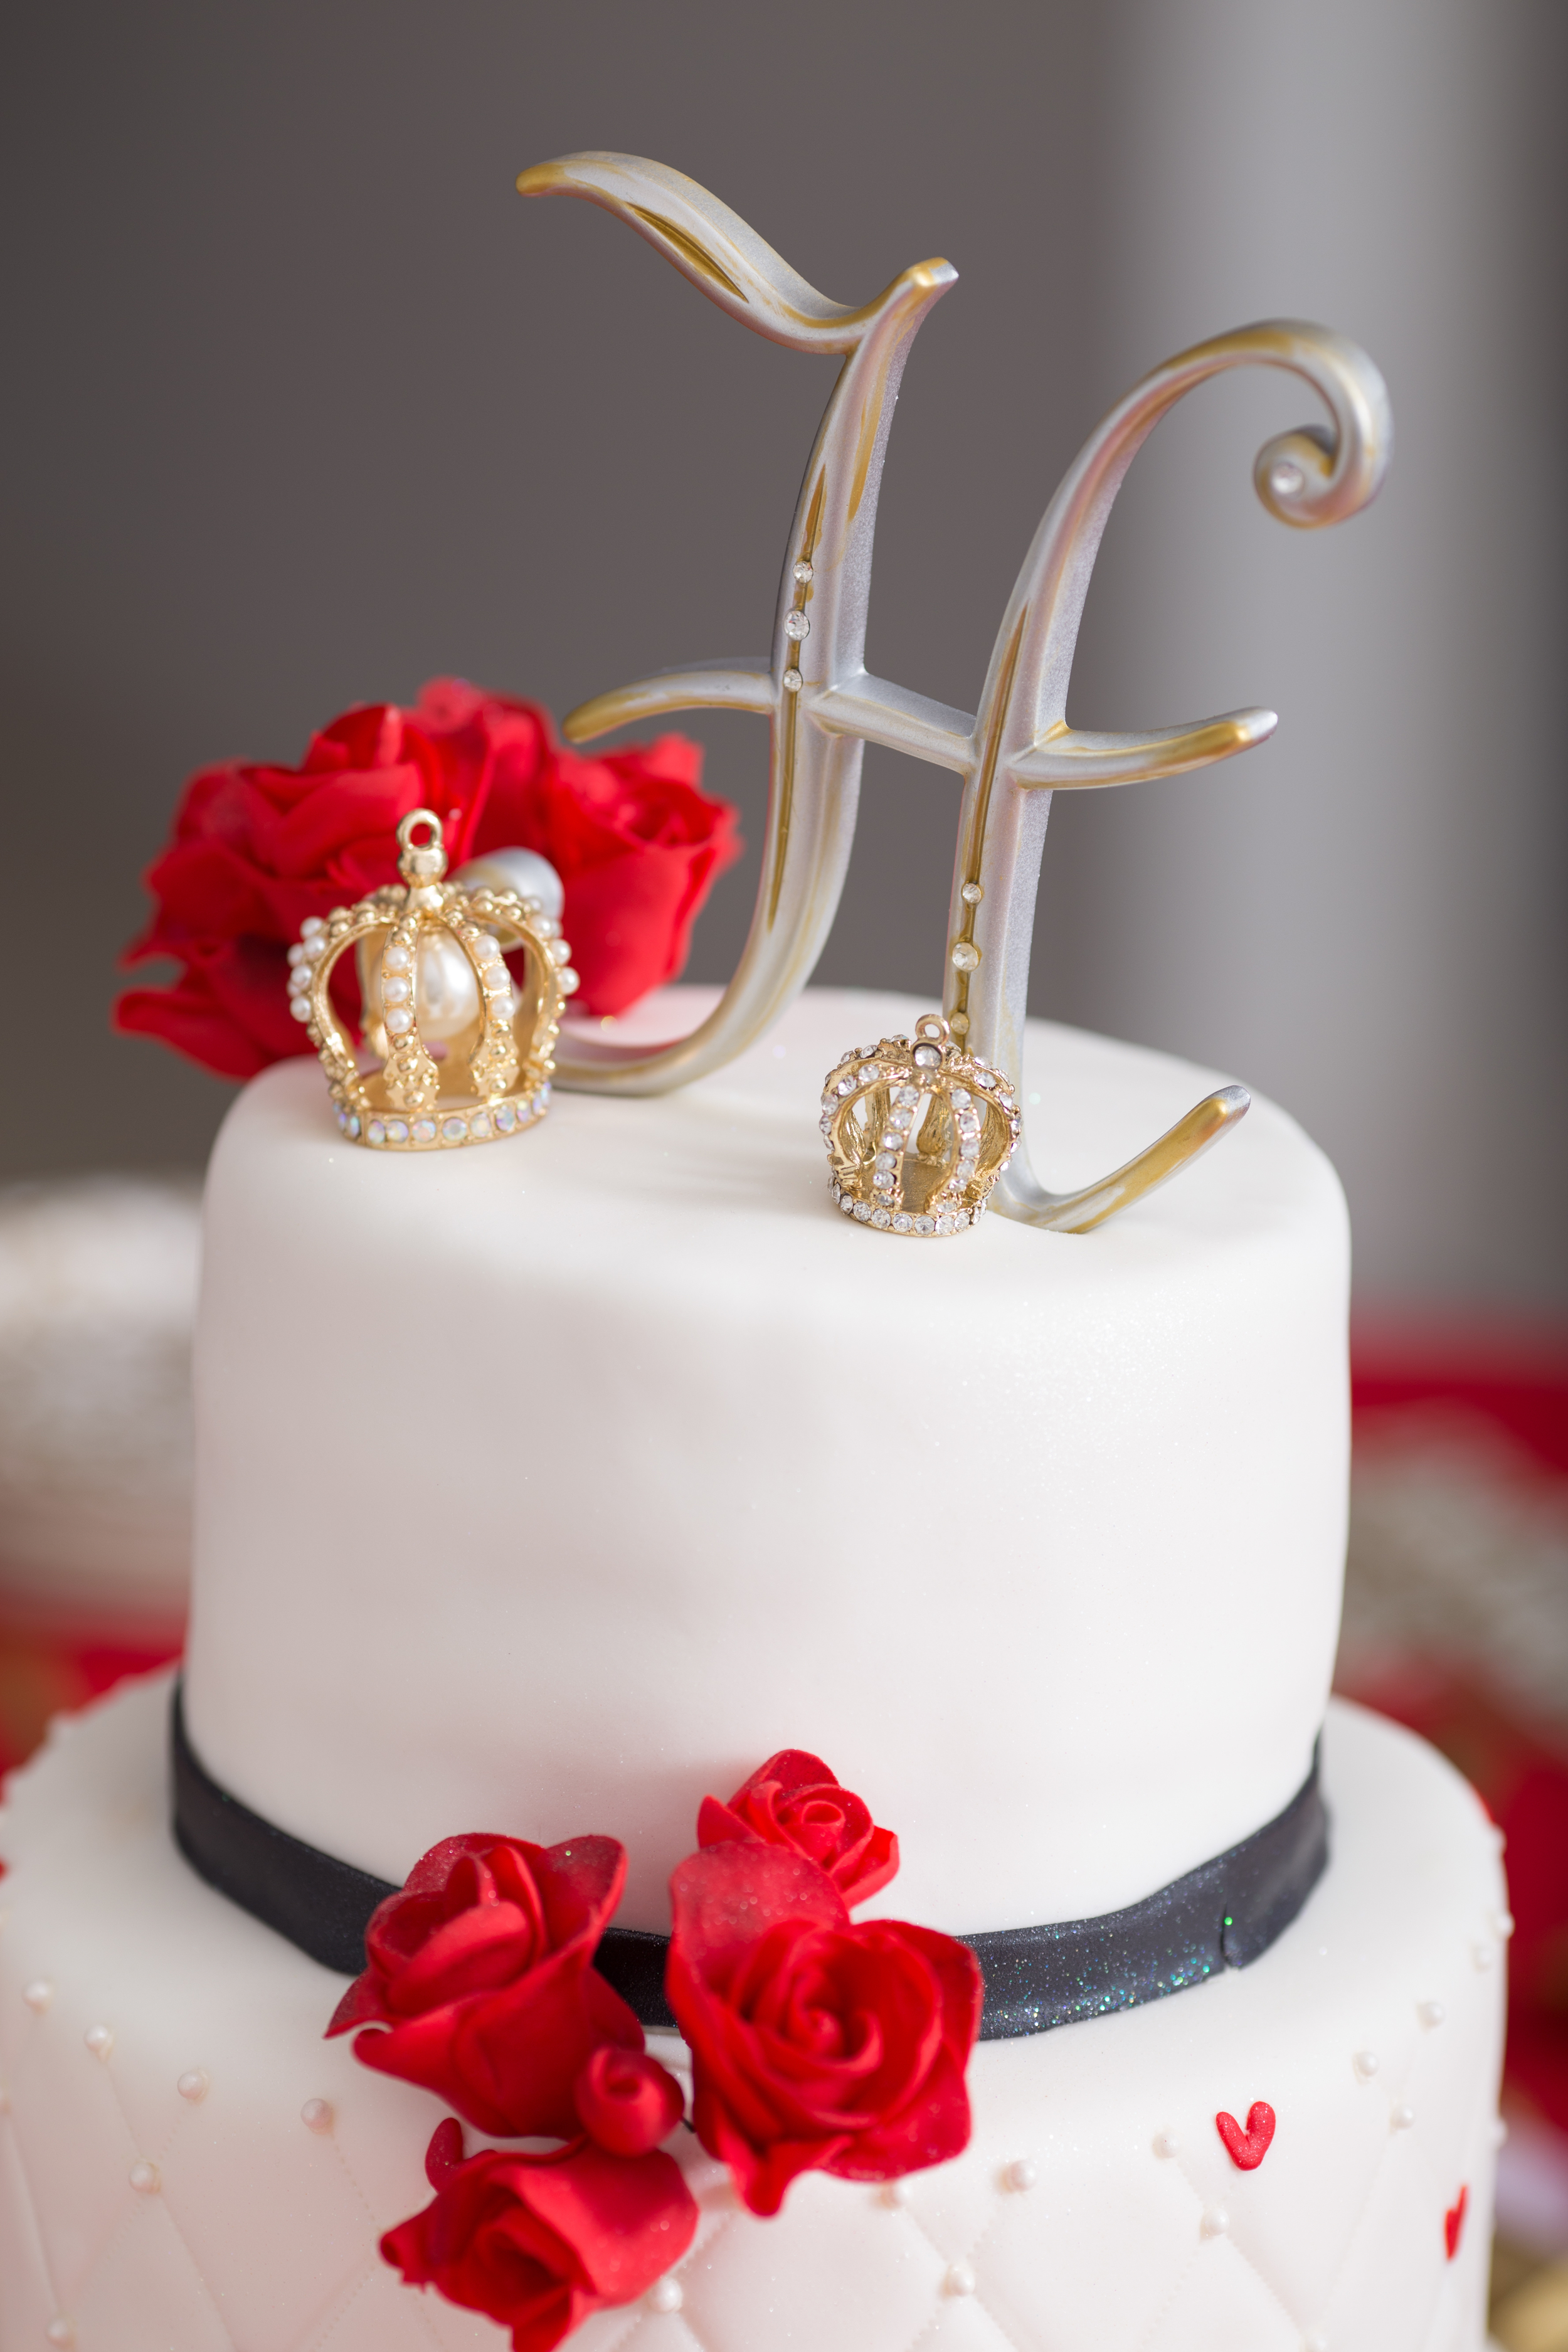 Three-tiered cake by Once Upon a Crumb Bakery!